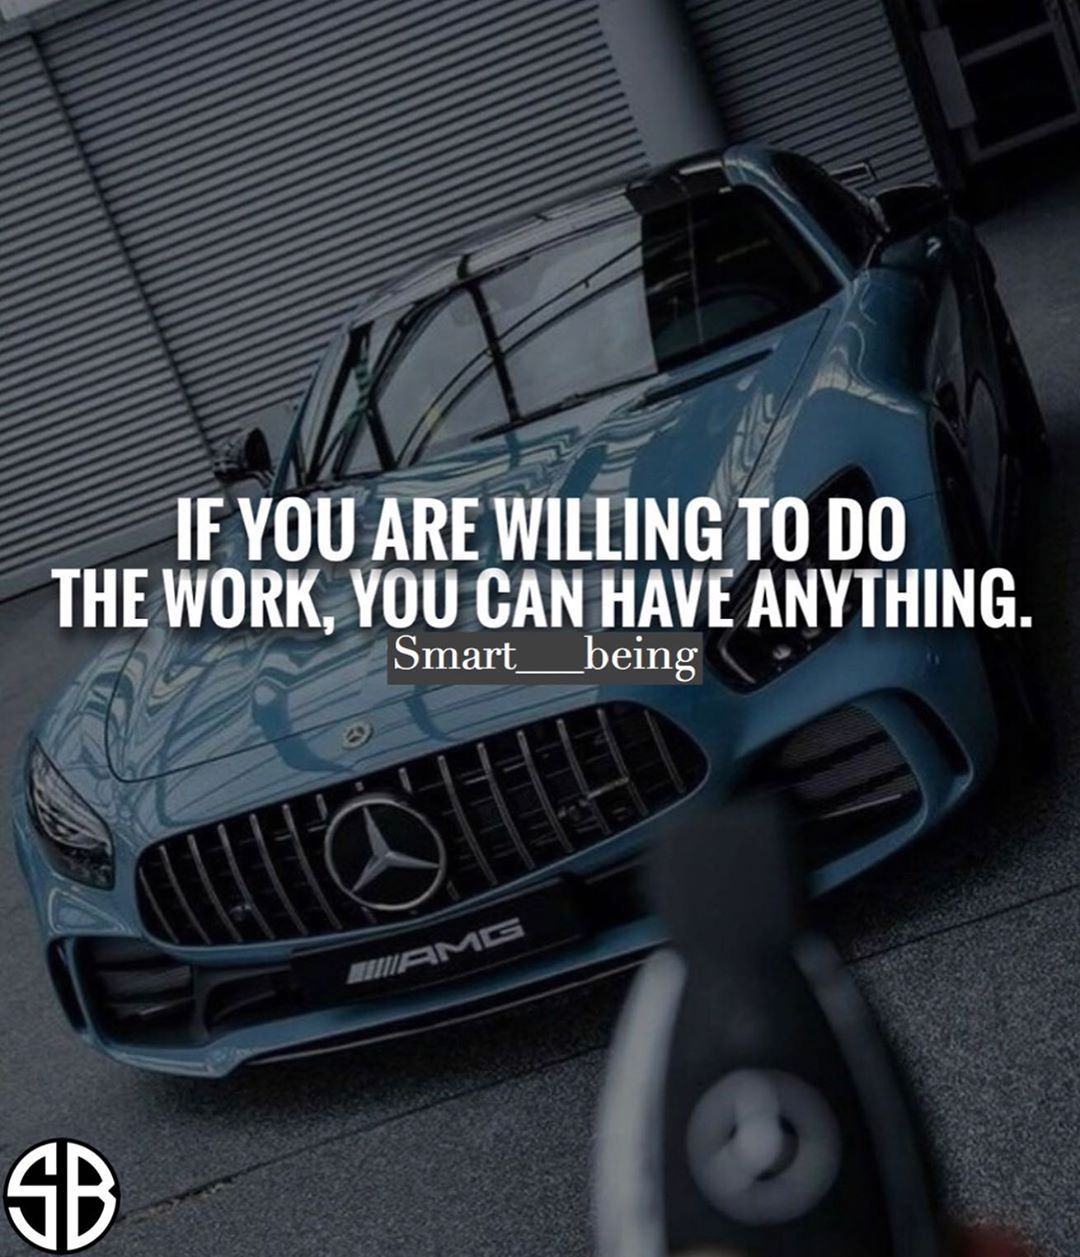 Smart Being On Instagram Double Tap If You Agree Follow Smart Being Quotes For Mo Car Quotes For Instagram Funny Car Quotes Daily Motivational Quotes